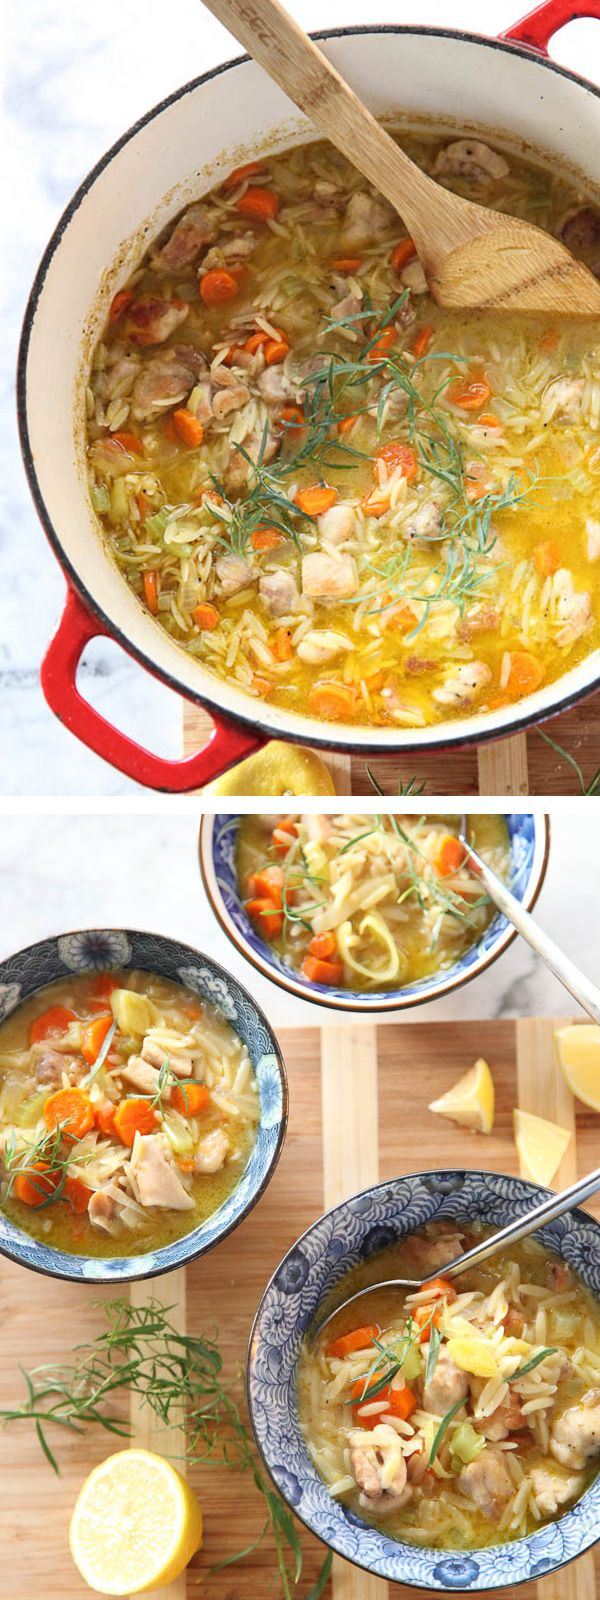 Lemon Chicken Stew with Orzo pasta is a perfect one-pot meal for busy weeknights #recipe on foodiecrush.com #soup #stew #chicken